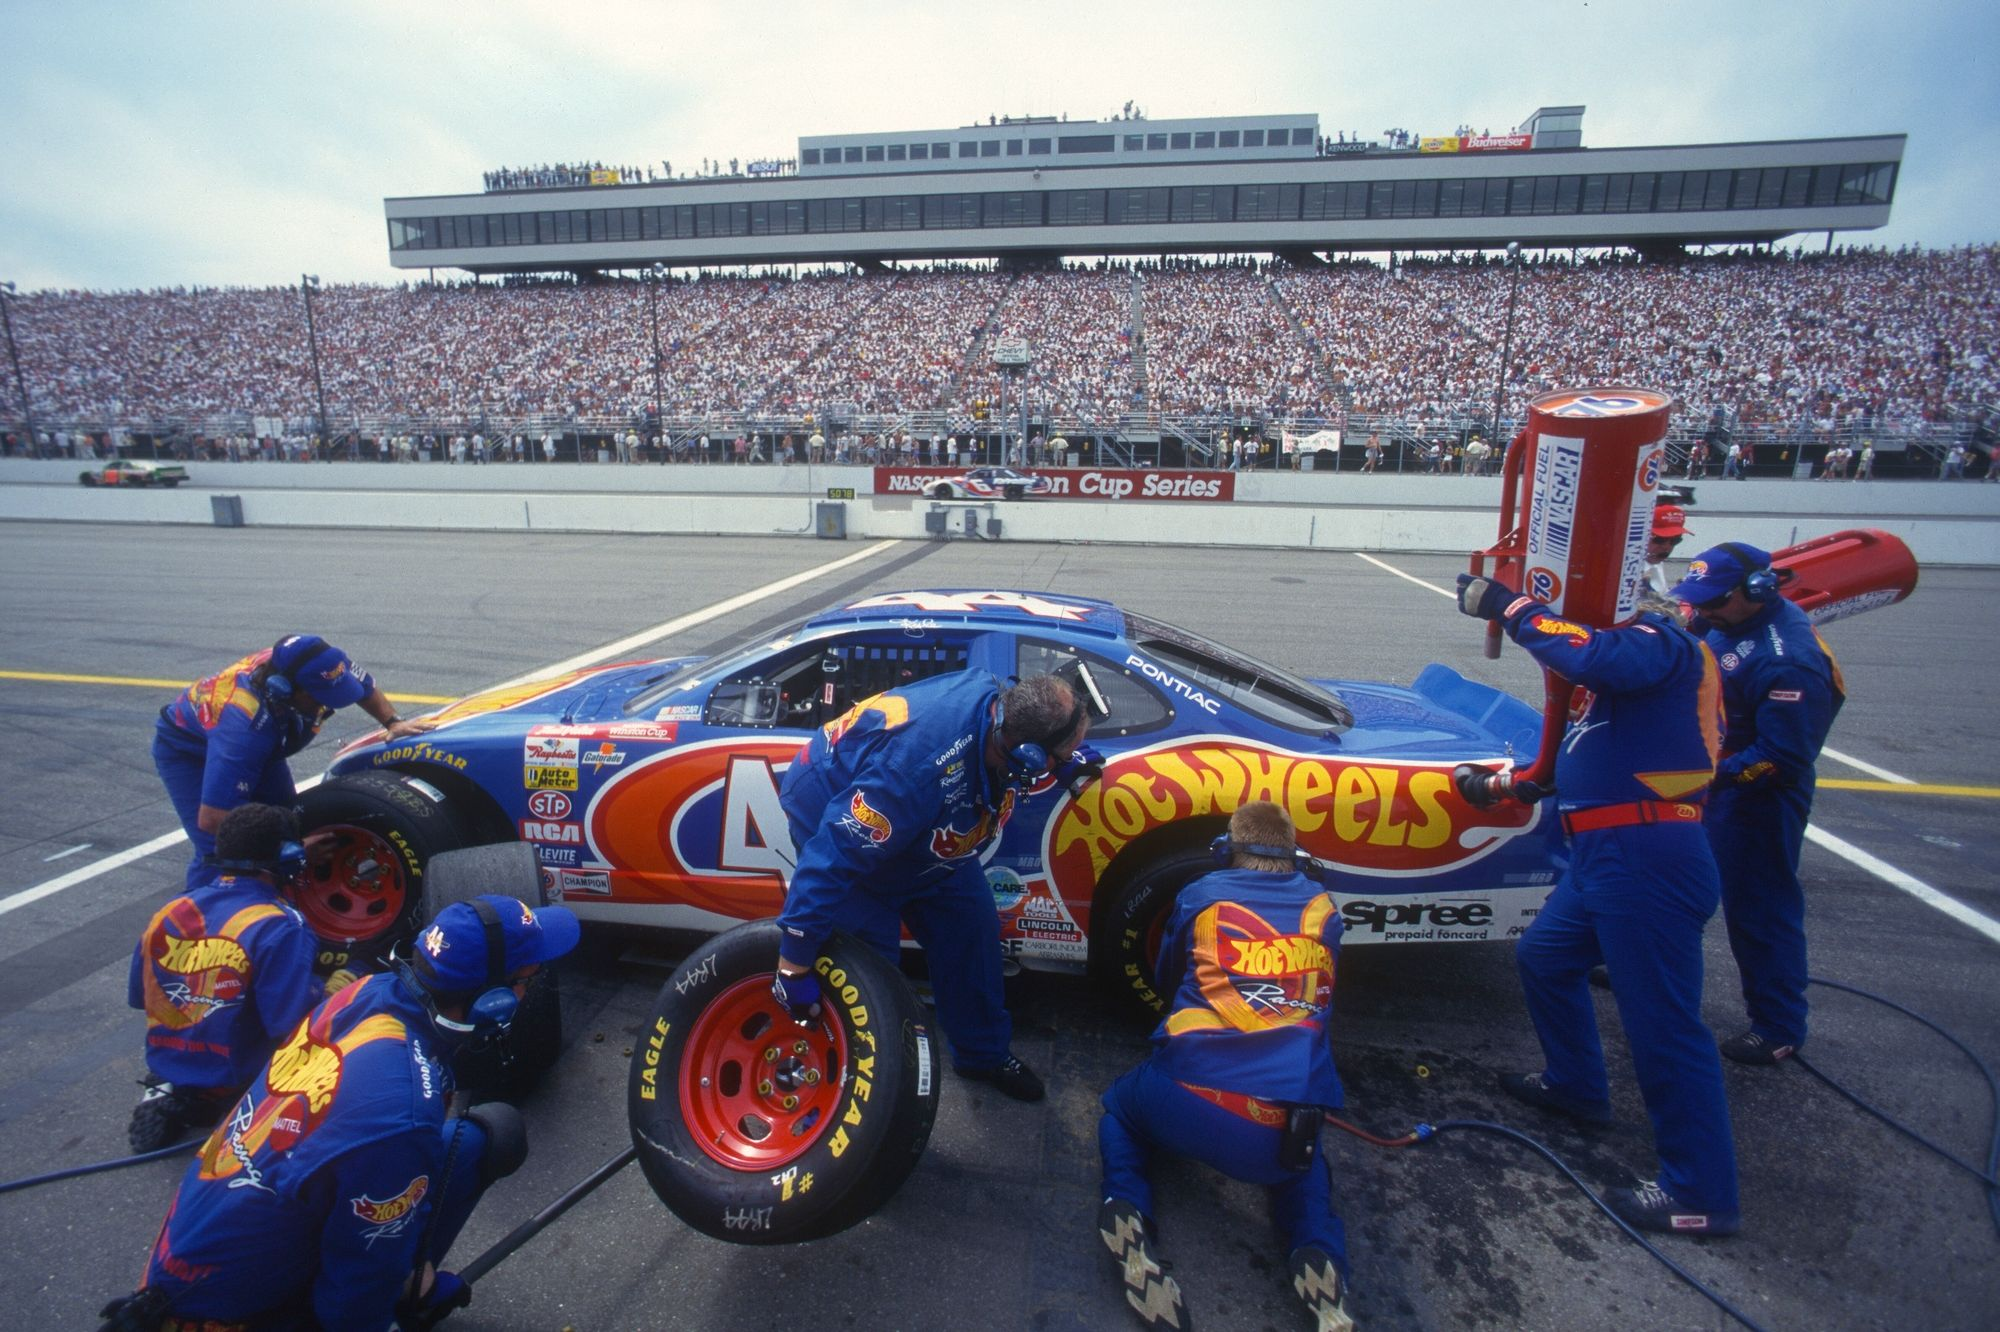 Hot Wheels sponsored pit stop for race car